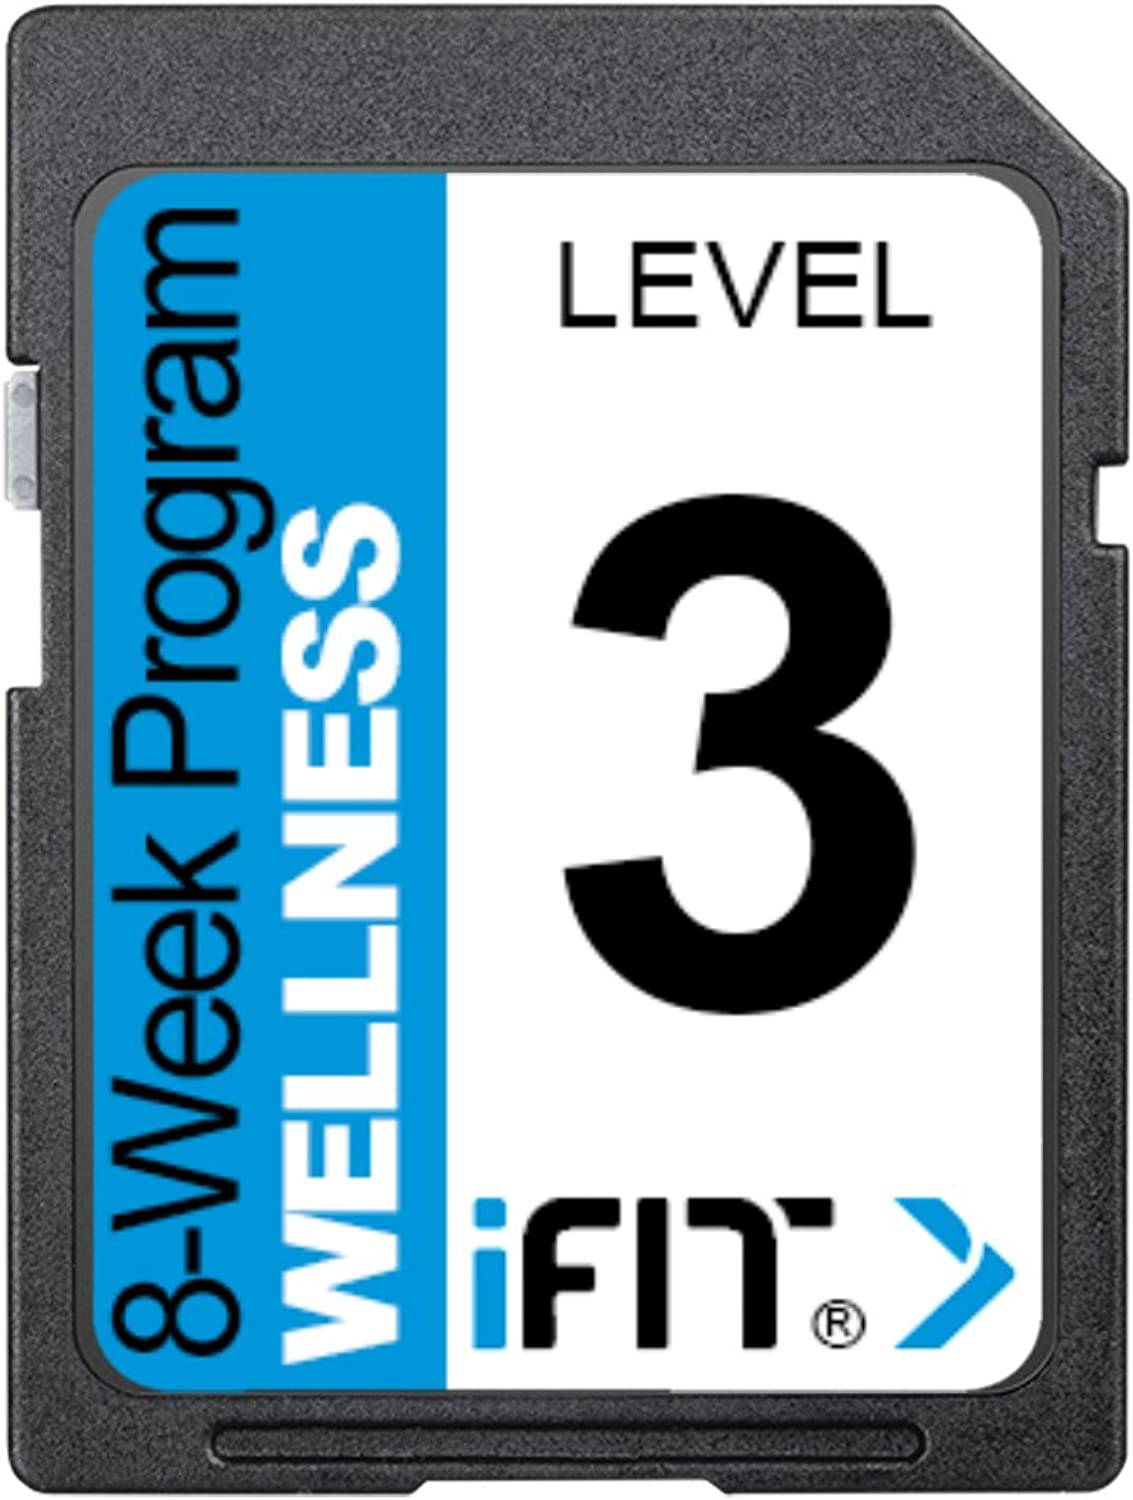 IFIT Exercise Workout SD Card  8Week 'Wellness' Program Level 3